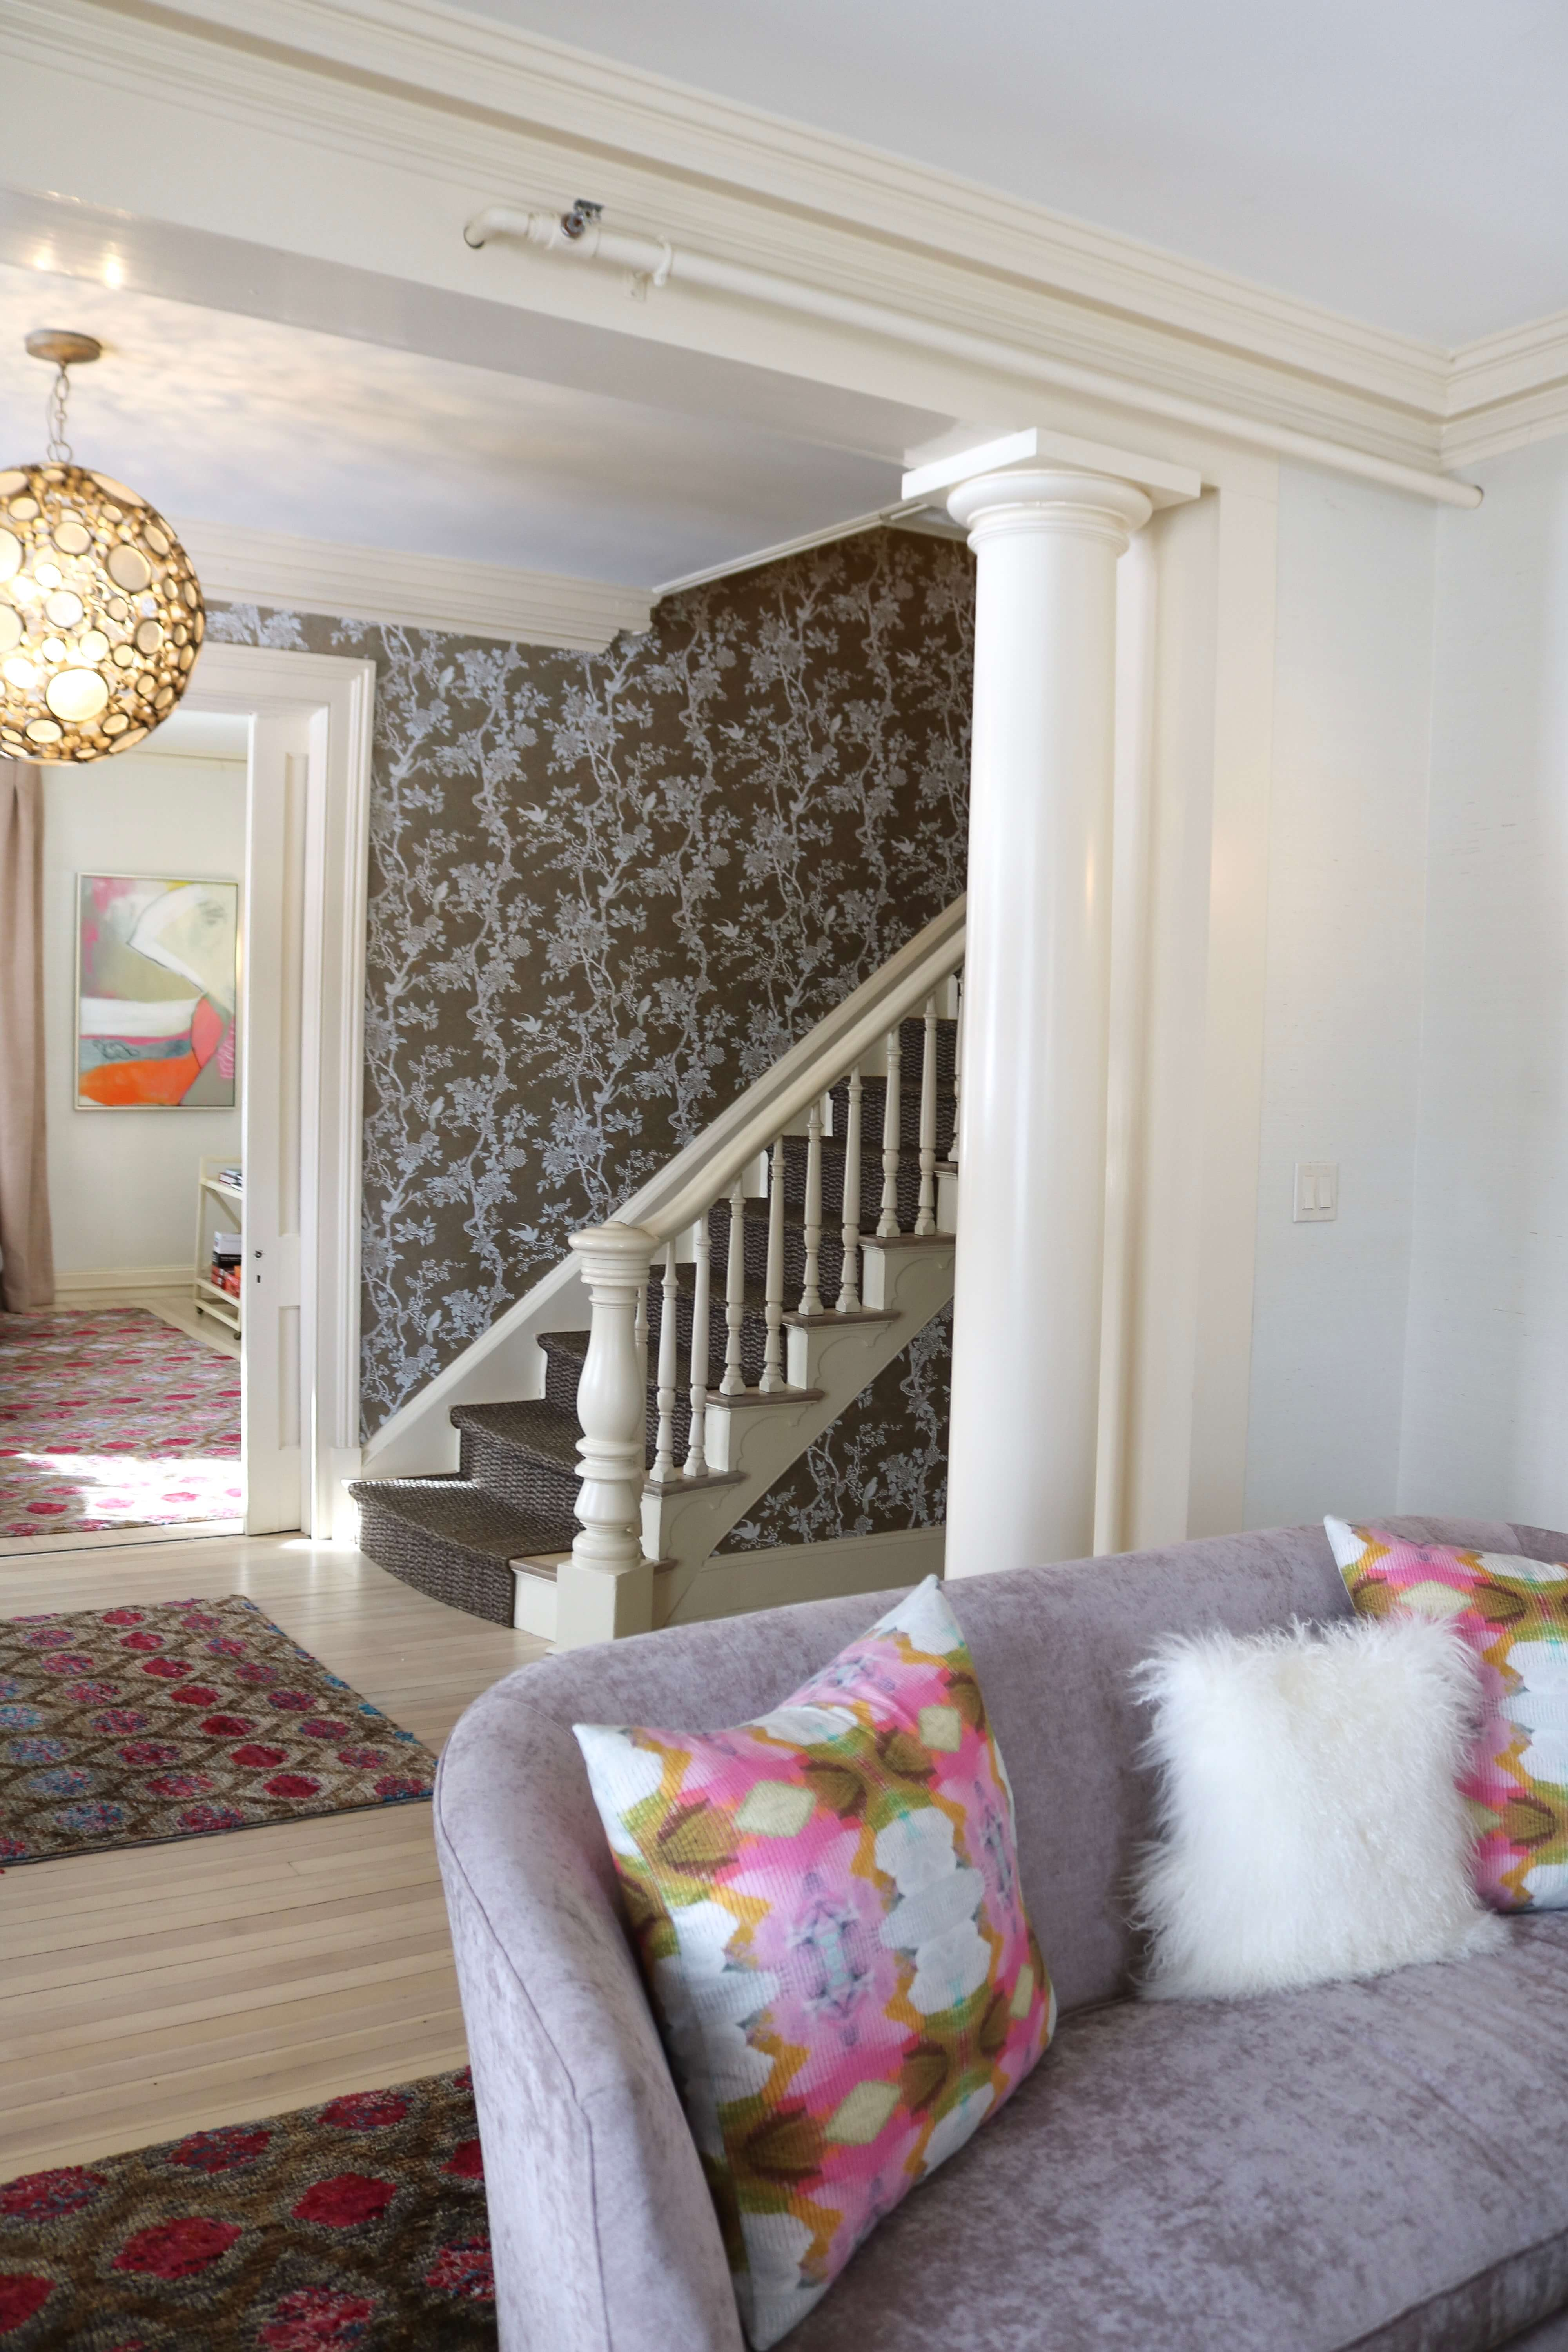 Travel review of The Berkshires and our stay at 33 Main sparkleshinylove